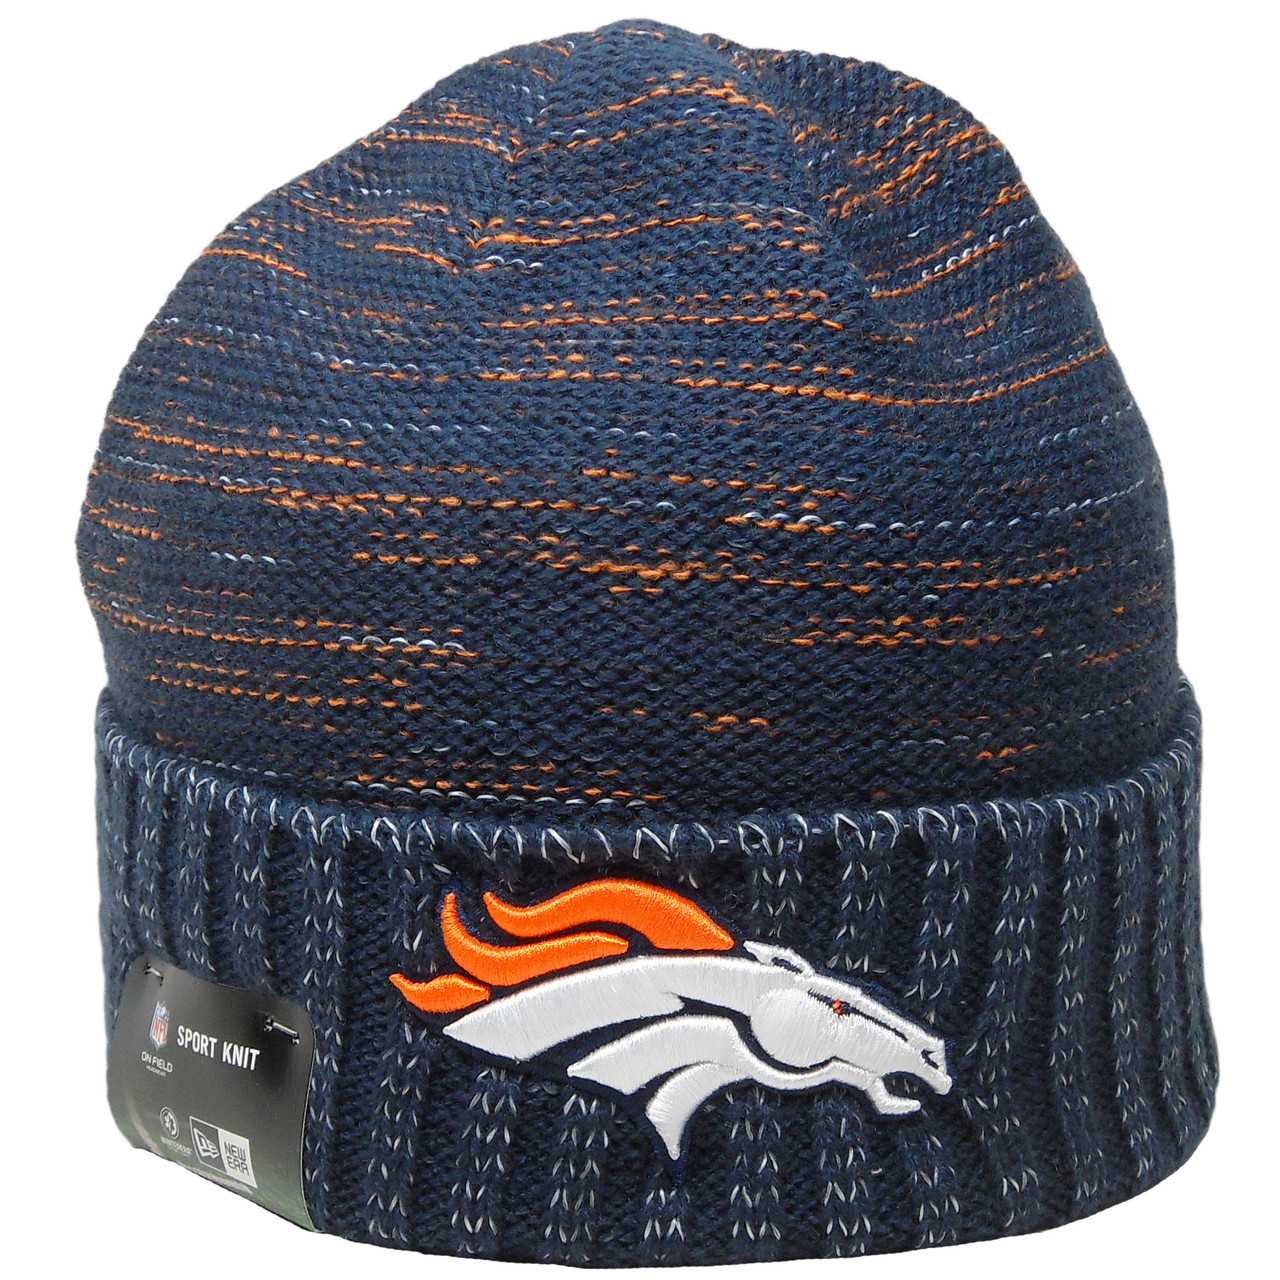 de12dc1b6c4 Denver Broncos New Era NFL Kickoff Knit - Navy